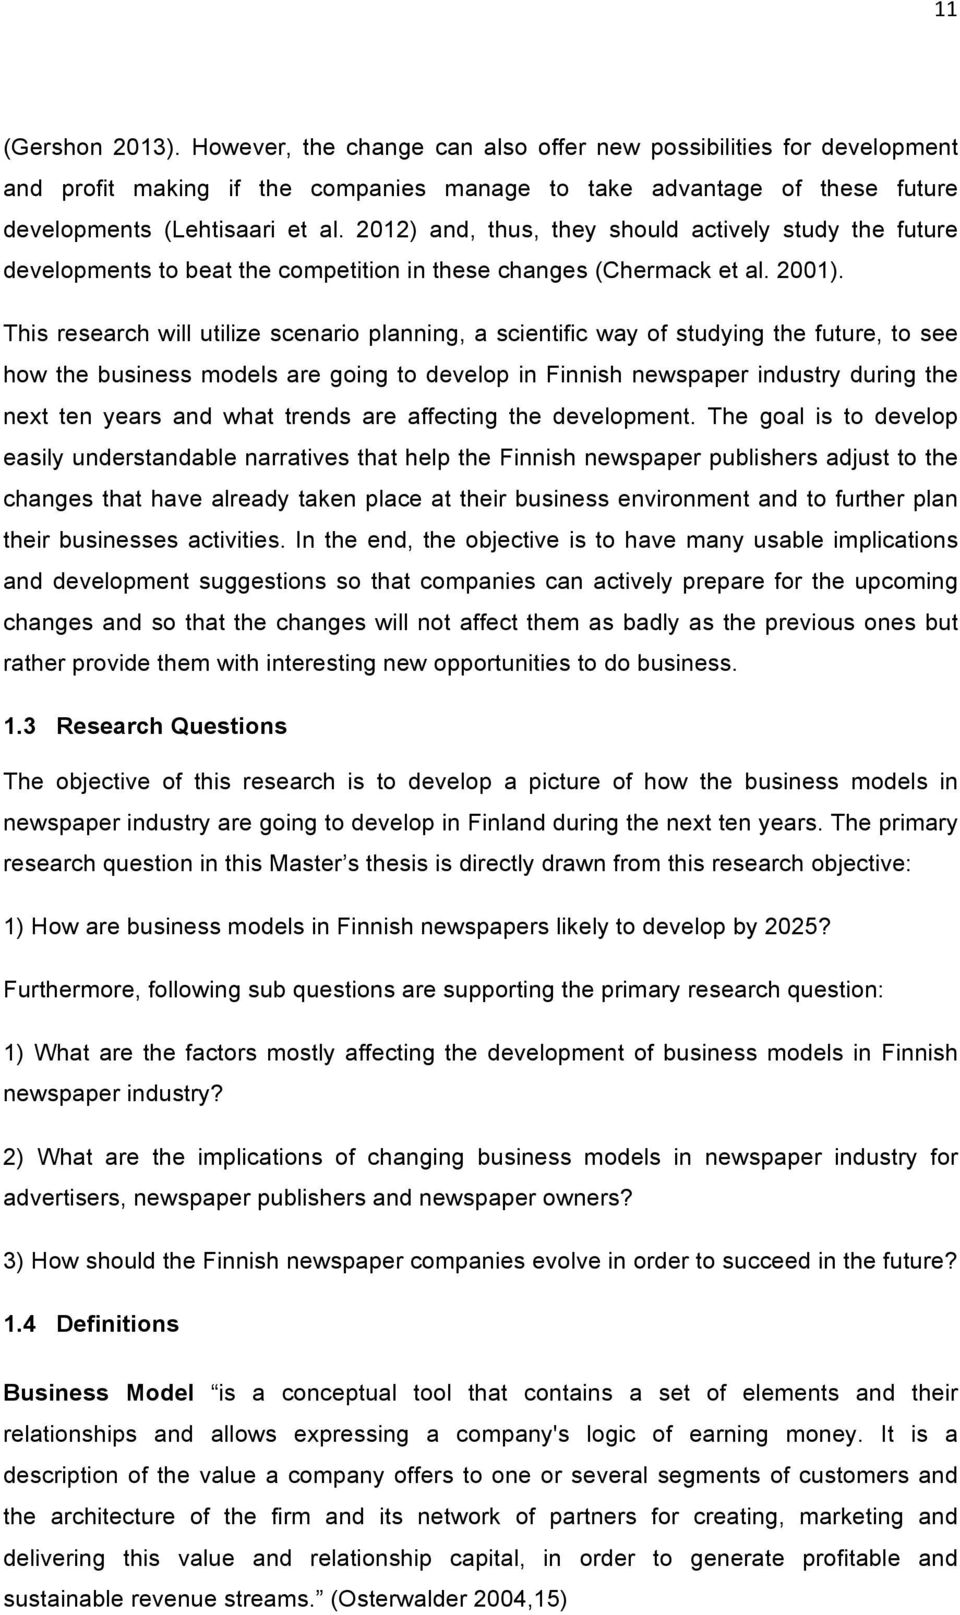 This research will utilize scenario planning, a scientific way of studying the future, to see how the business models are going to develop in Finnish newspaper industry during the next ten years and